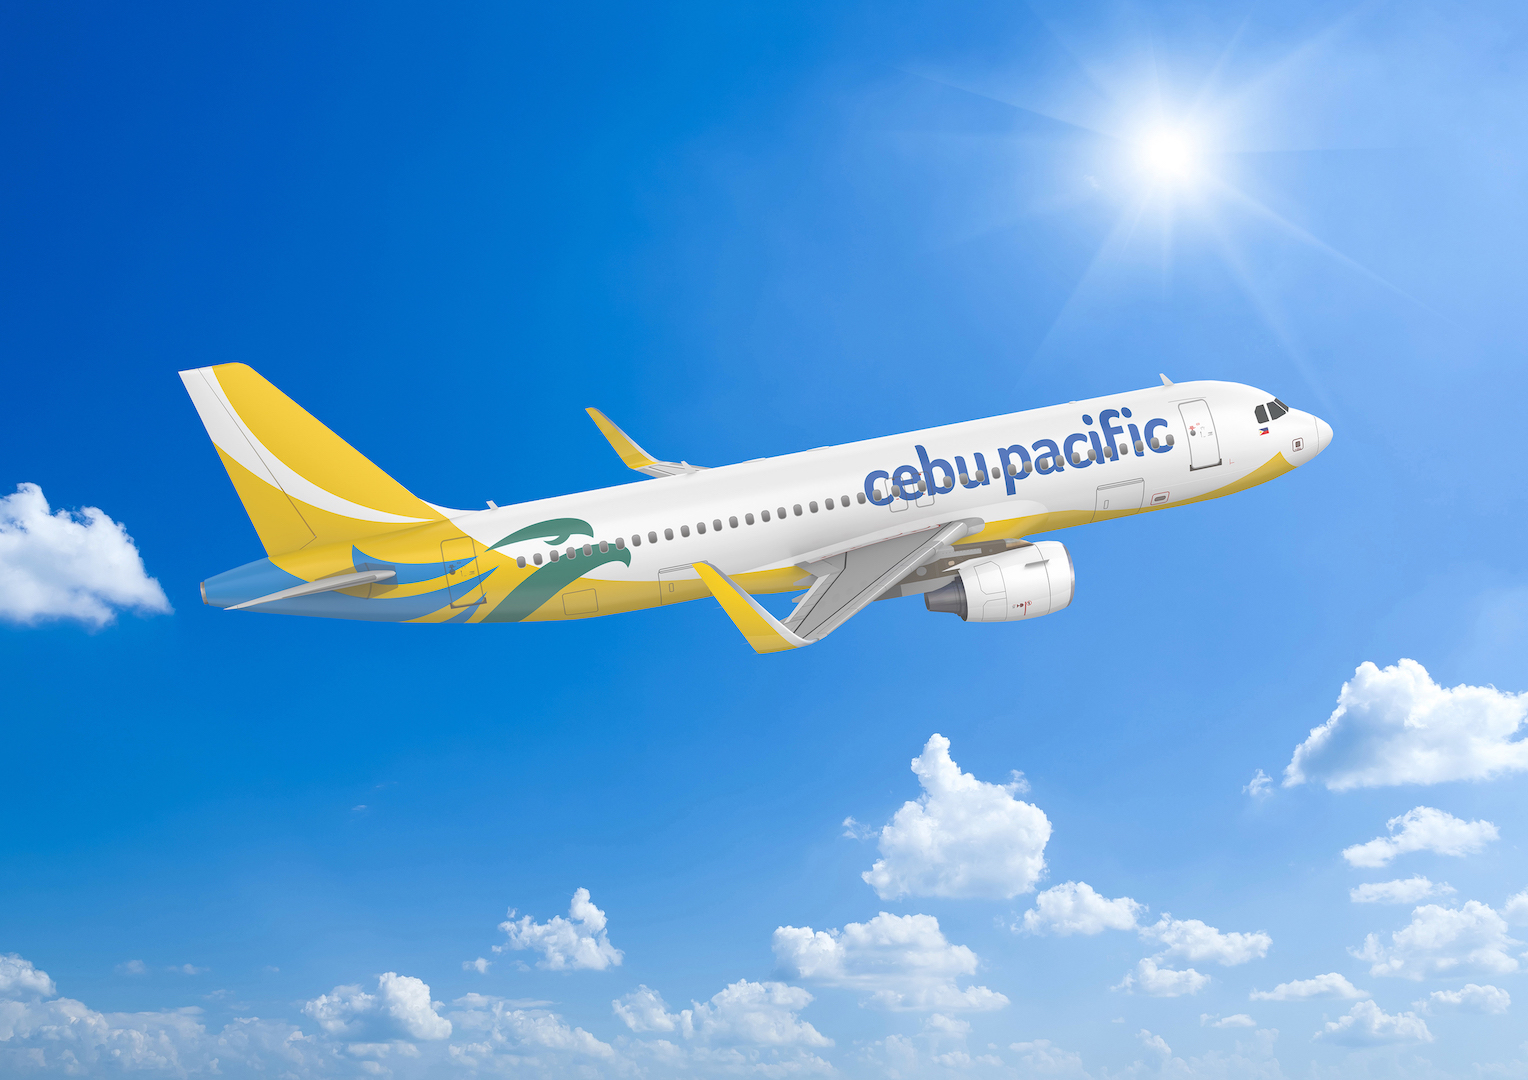 Giving Asia's First Low Cost Carrier International Credibility